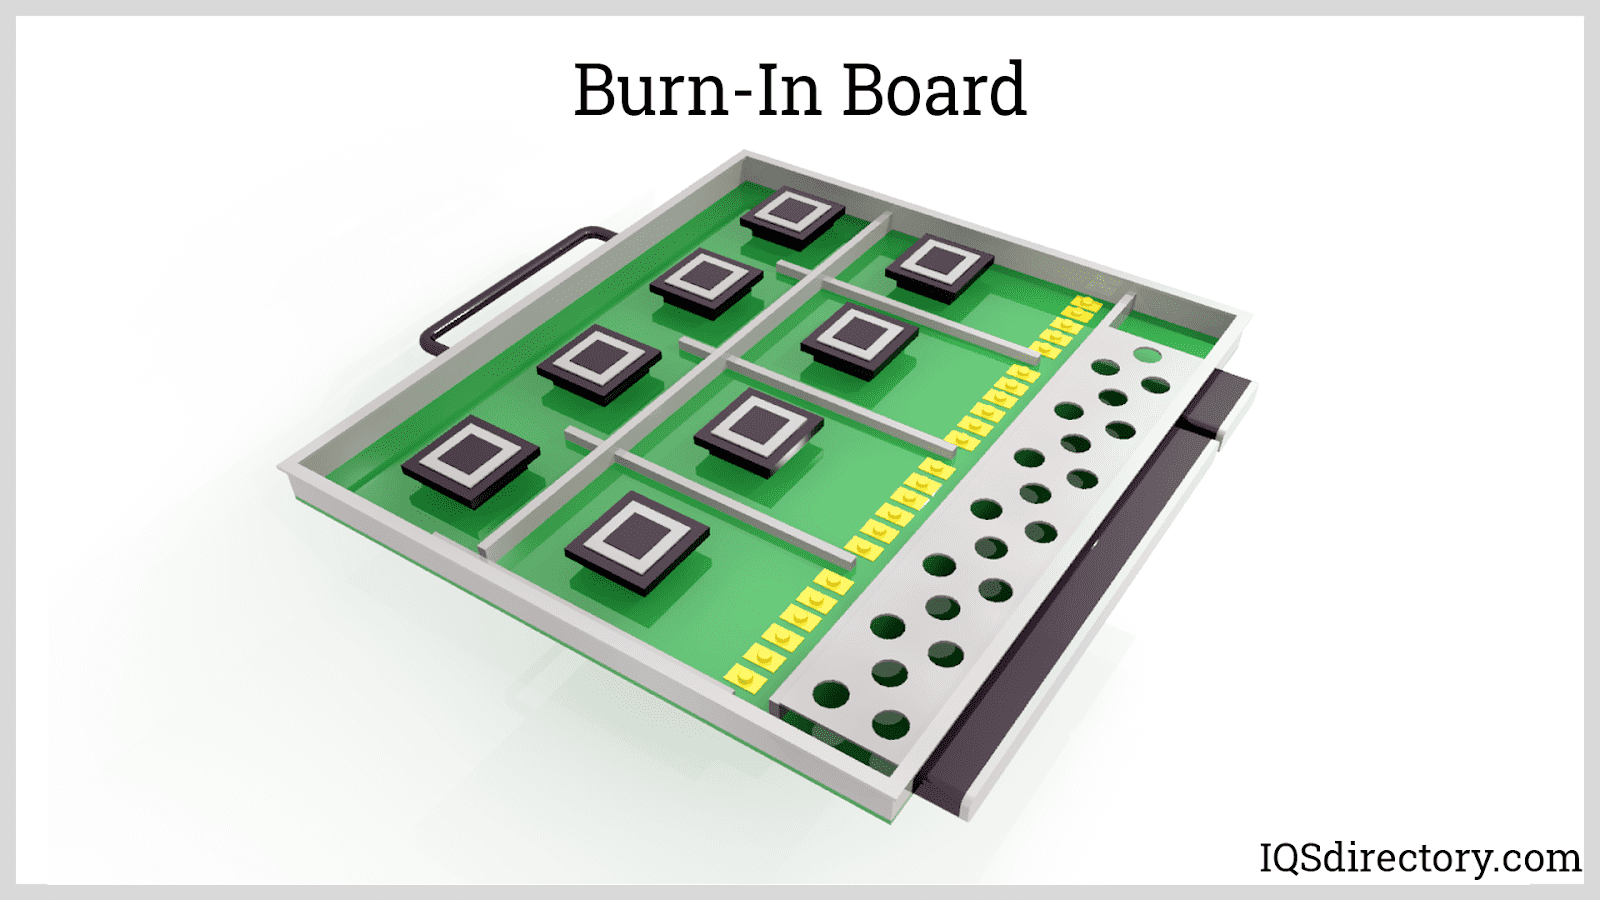 Burn-In Board